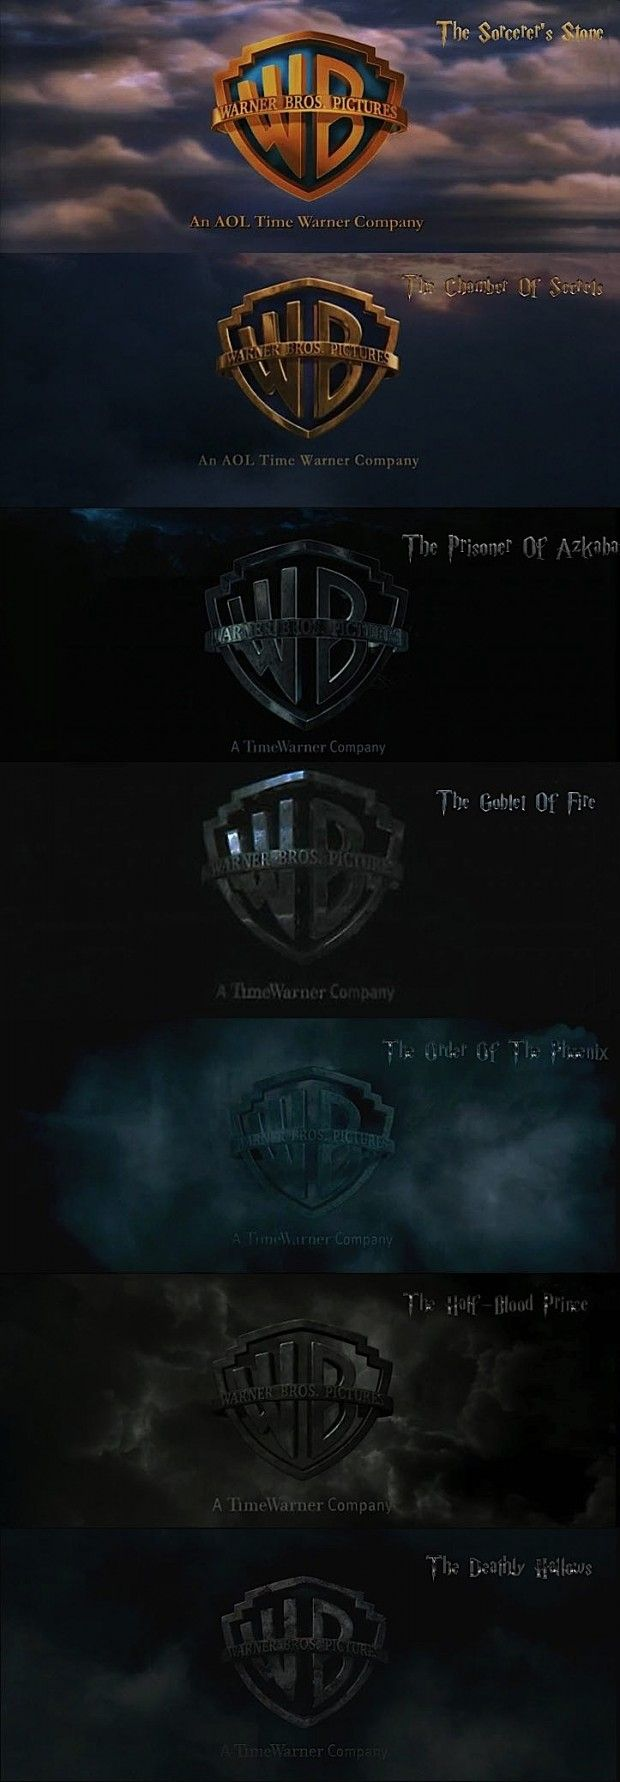 Oh, WB logo. How terrifying you became with each new movie.